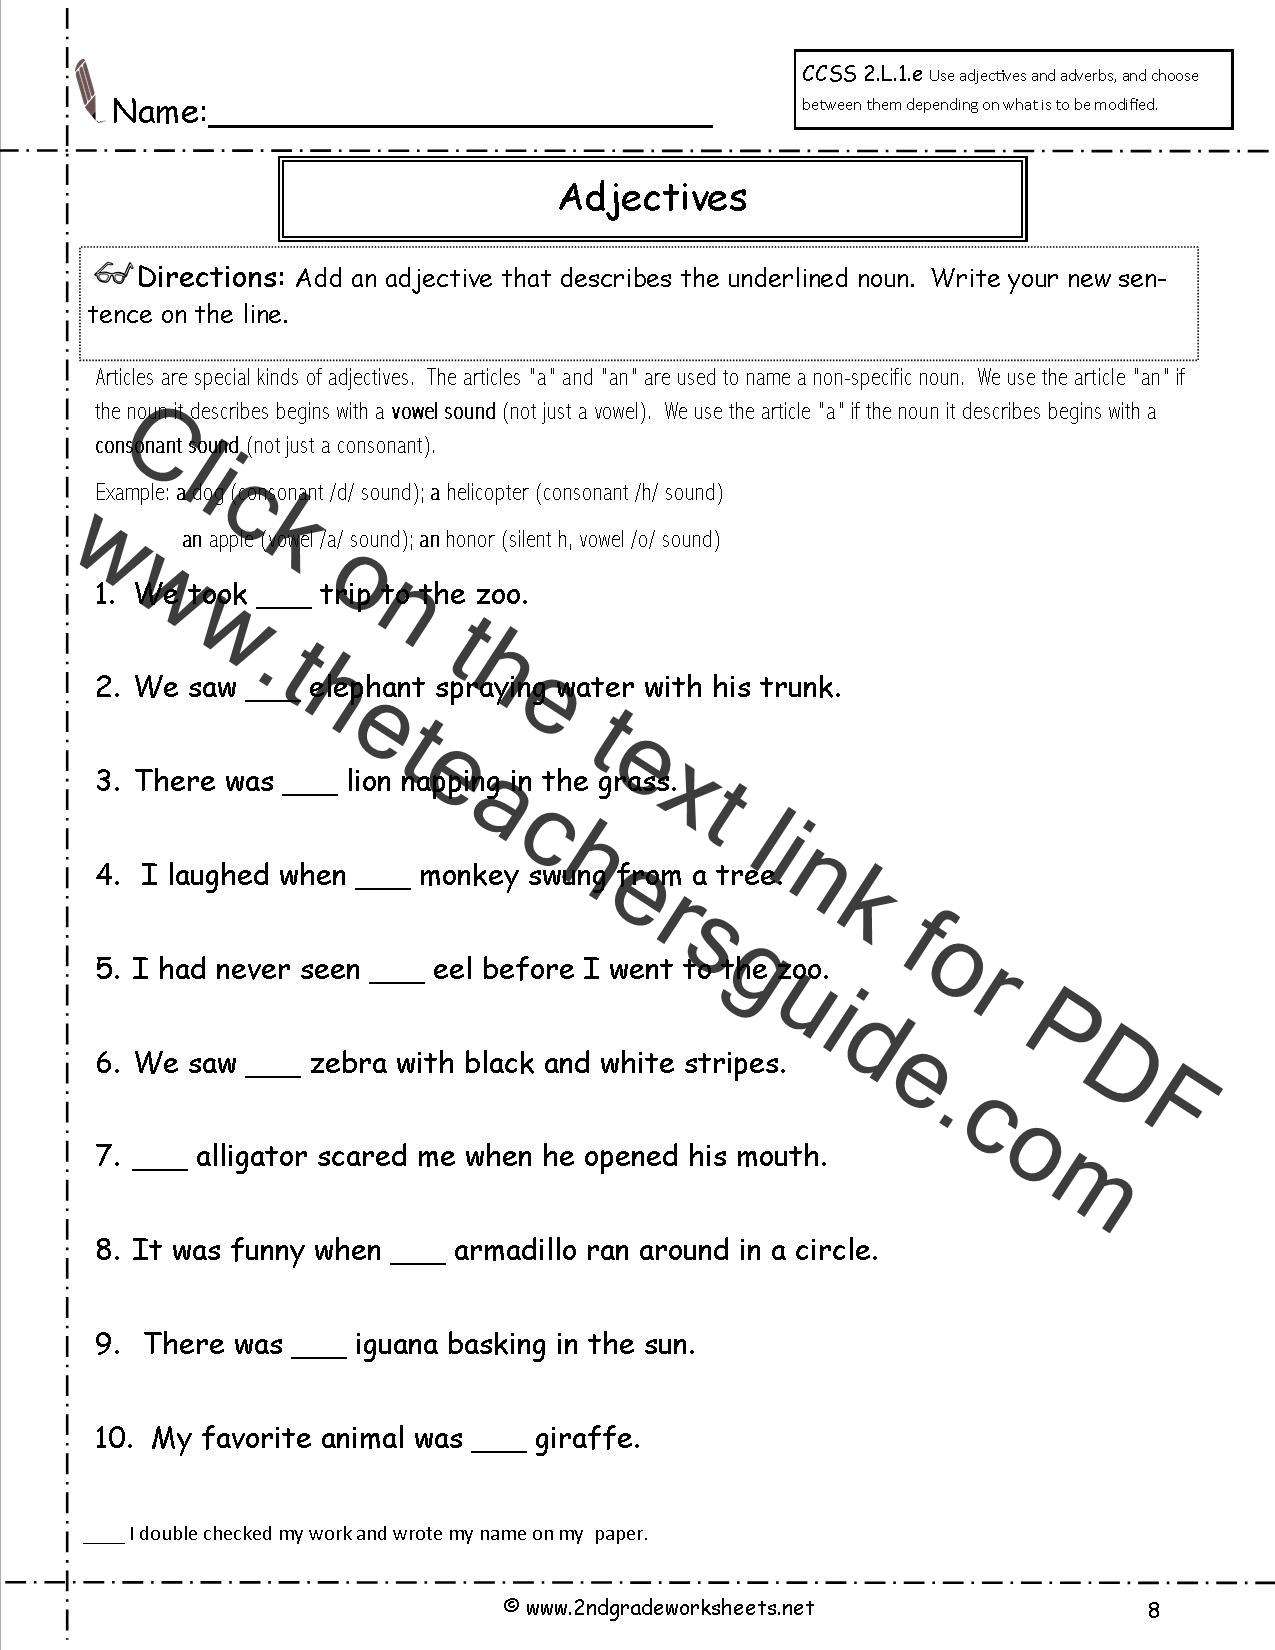 Worksheet Grade 2 Free Worksheets free languagegrammar worksheets and printouts adjectives worksheets